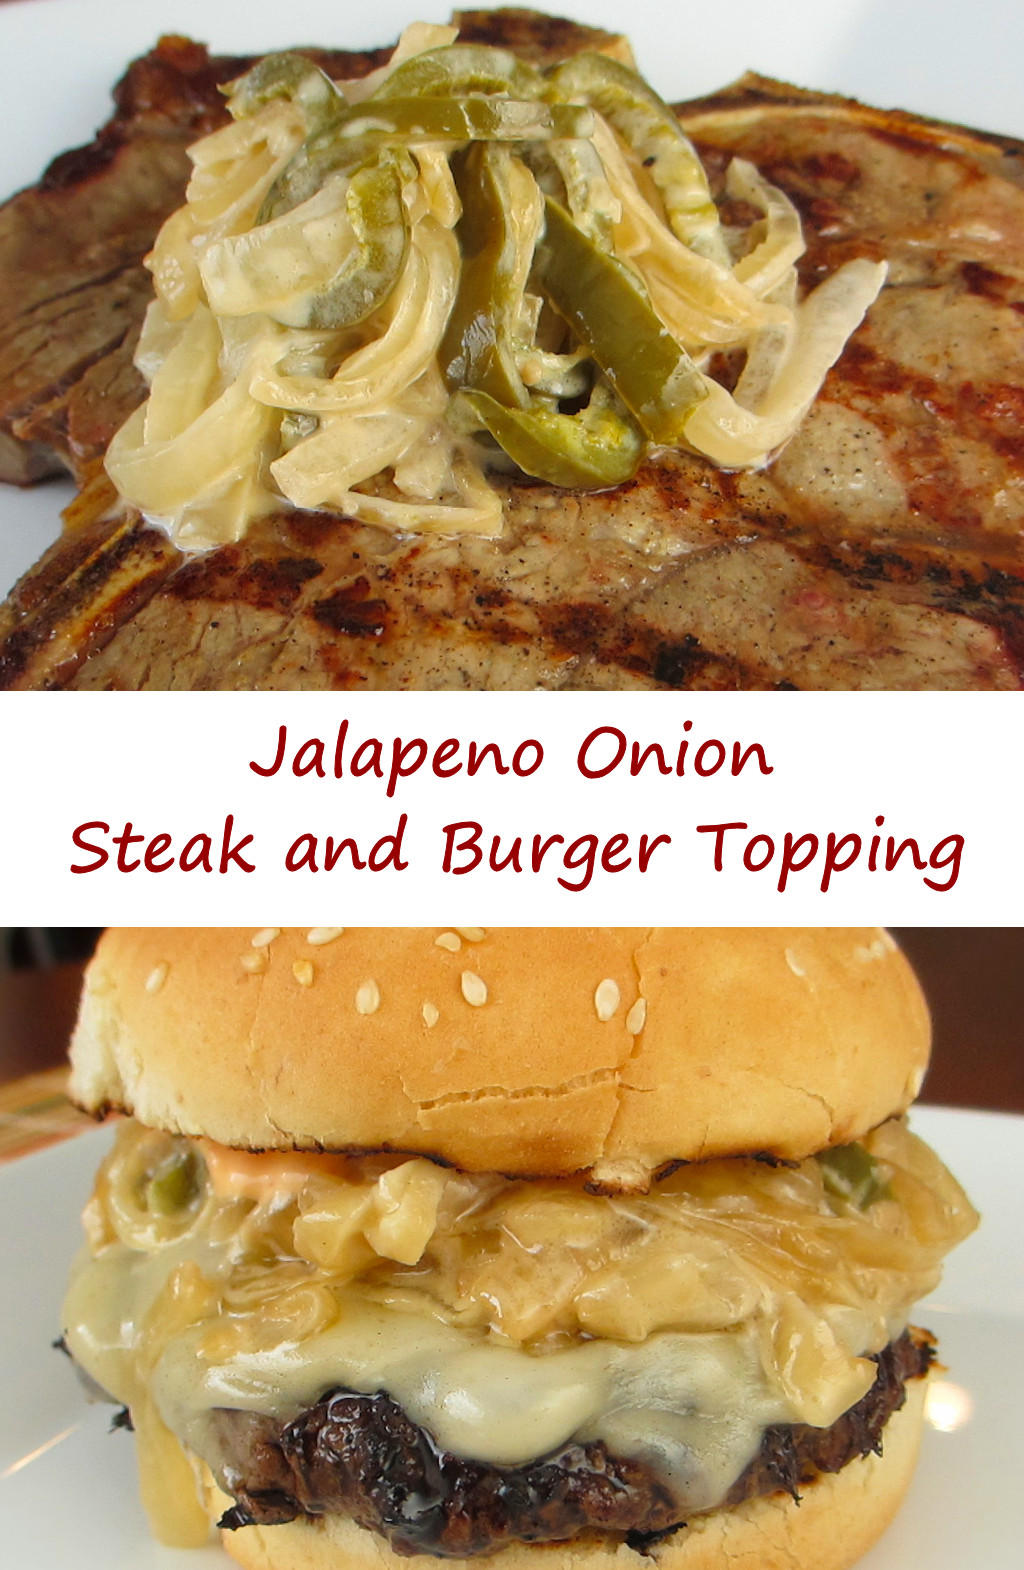 jalapeno-onion-steak-and-burger-topping